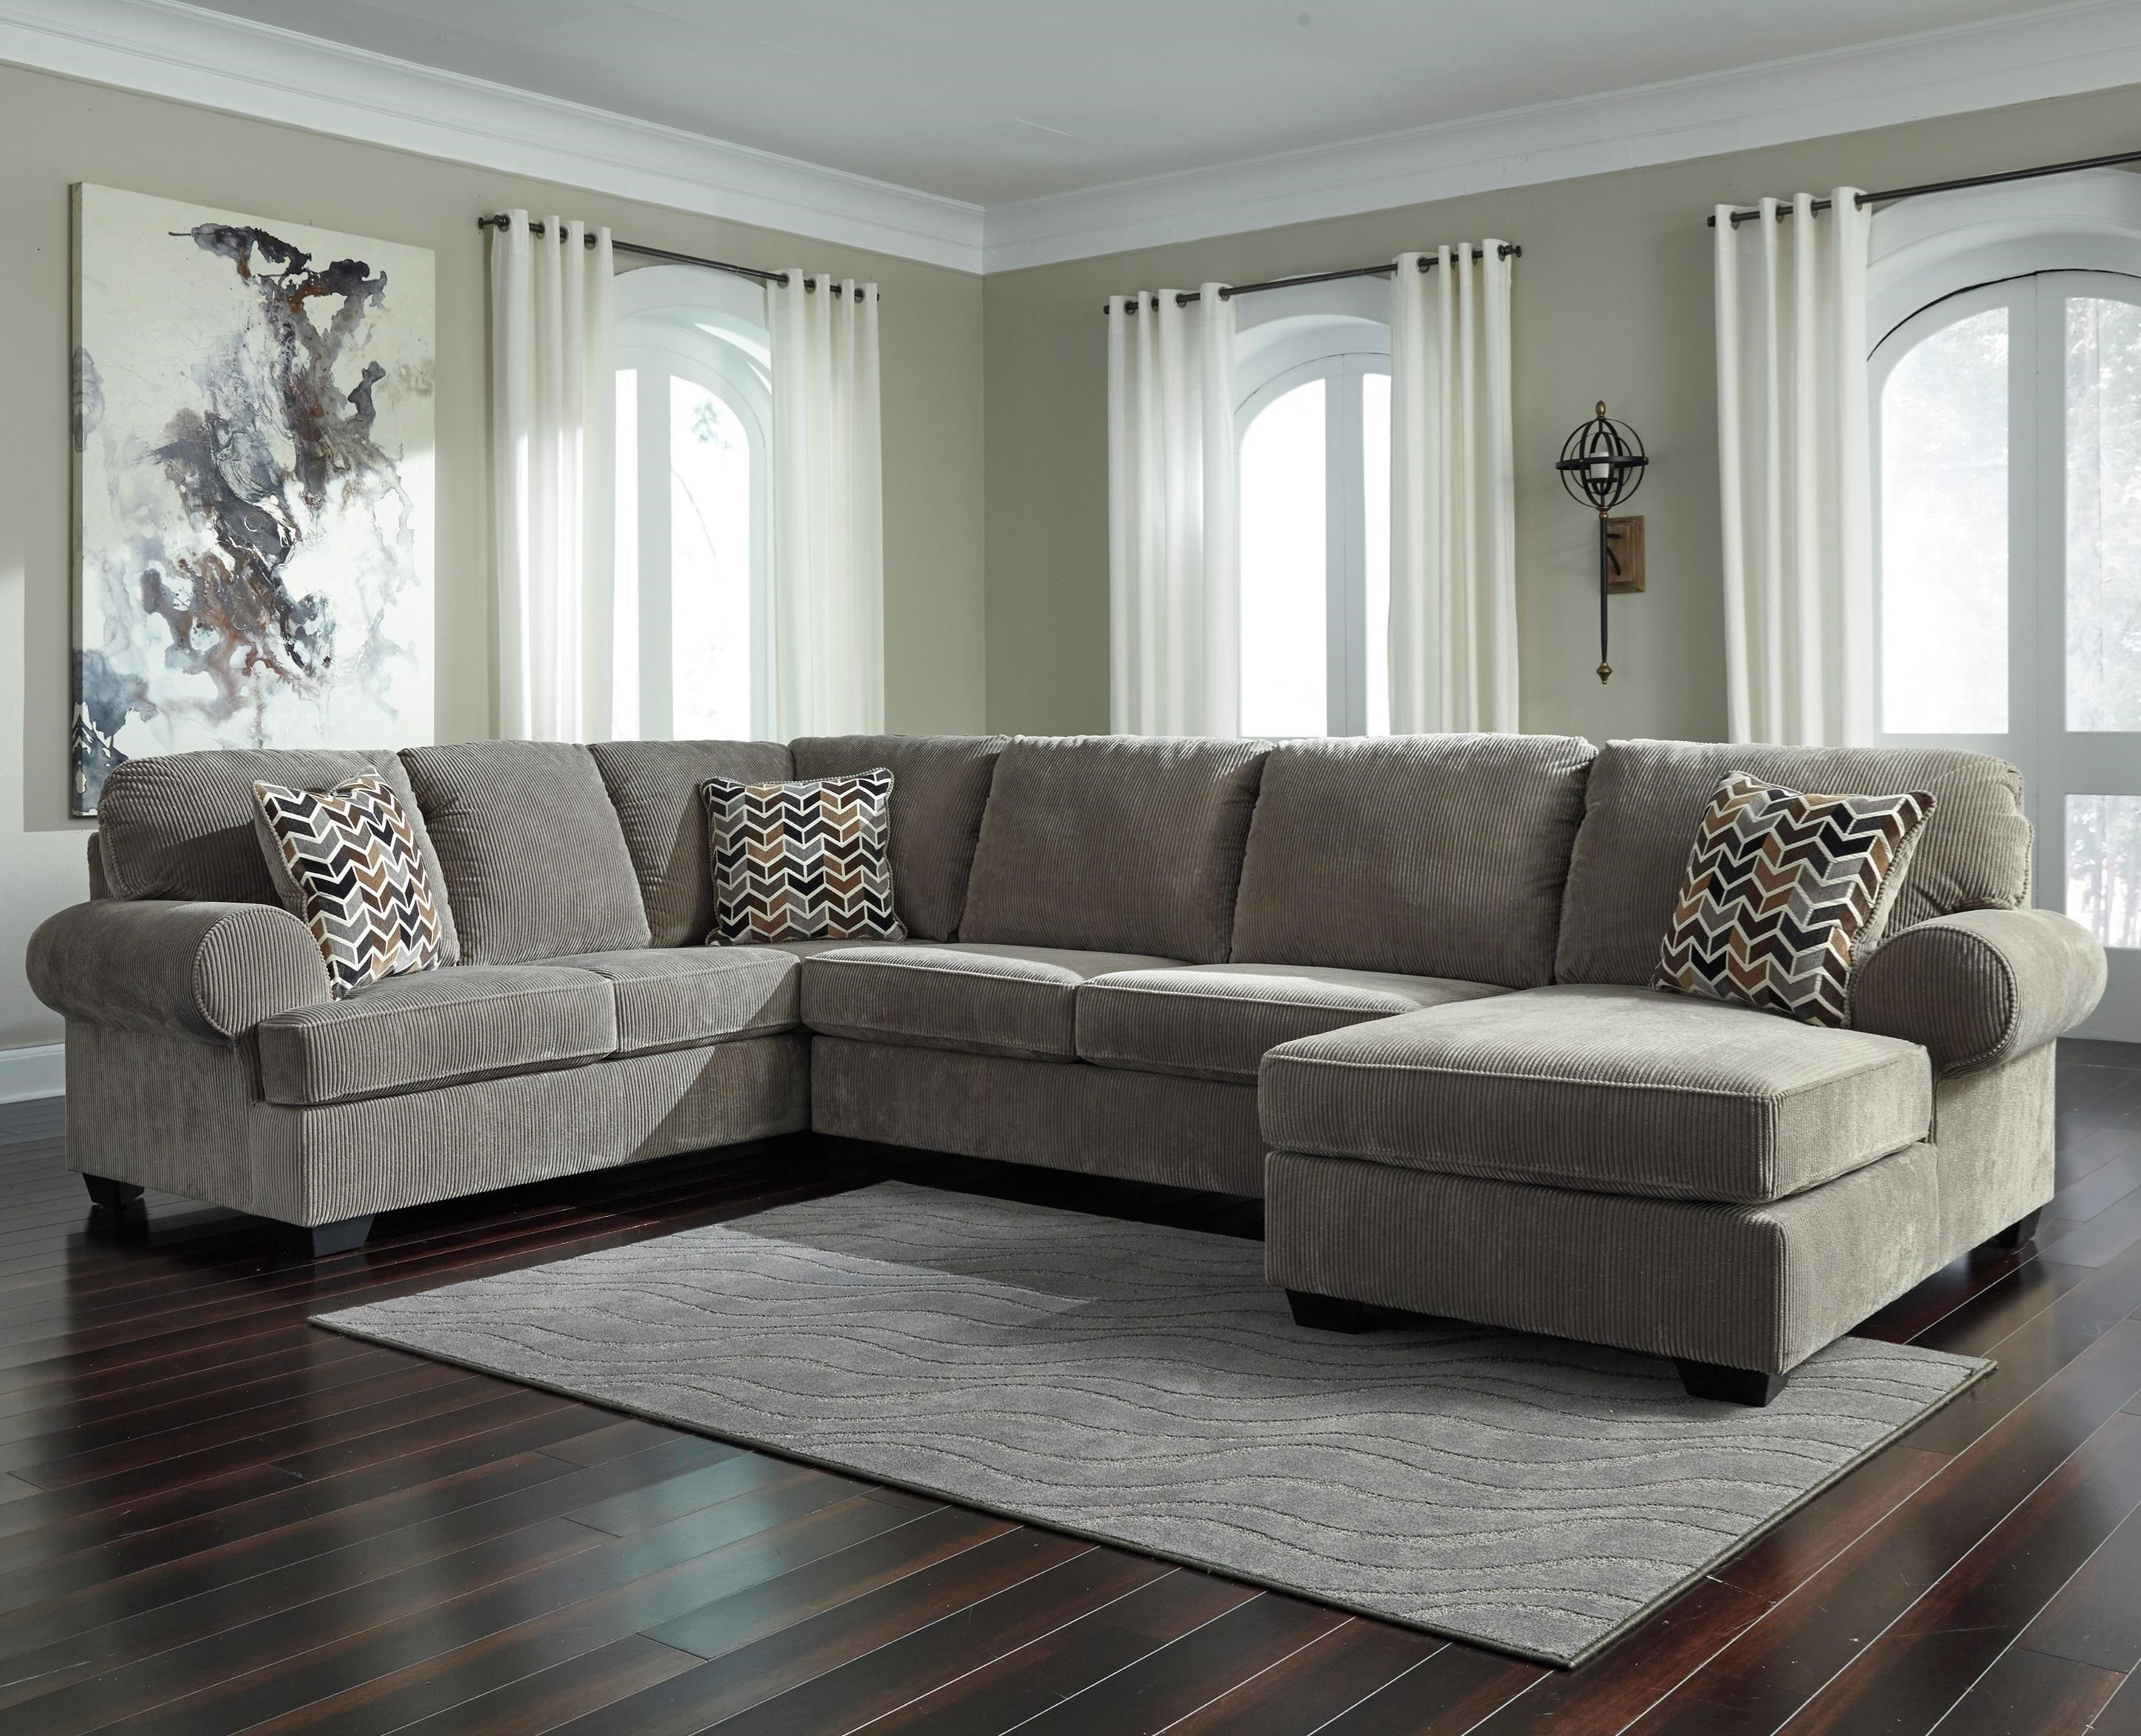 Signature Design By Ashley Jinllingsly Contemporary 3 Piece Sectional With  Right Chaise In Corduroy Fabric